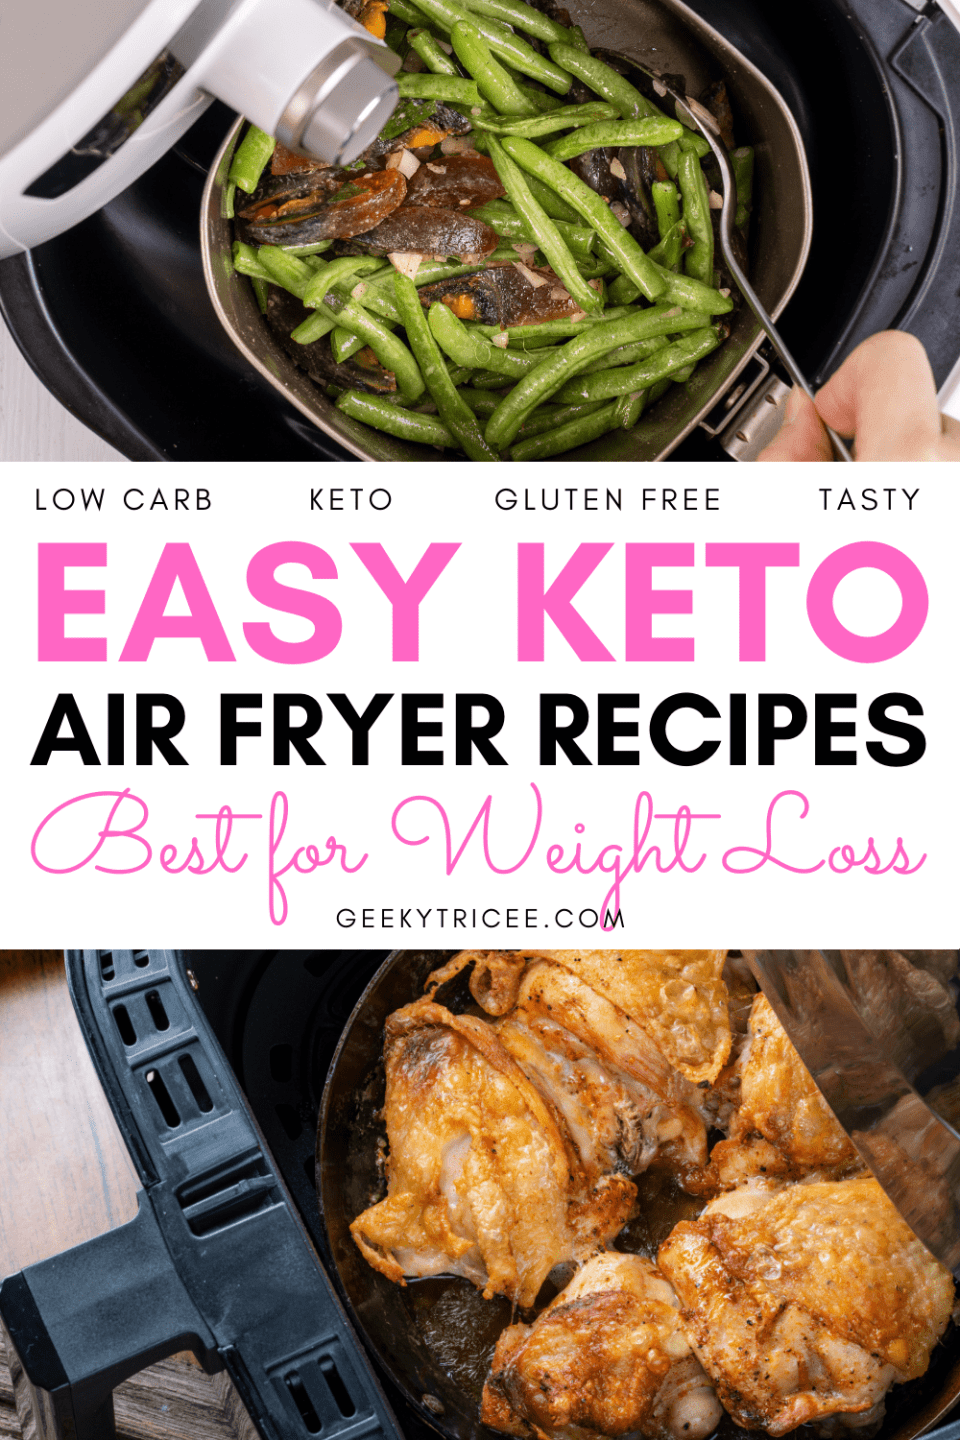 Easy keto air fryer recipes best for weight loss Pinterest pins